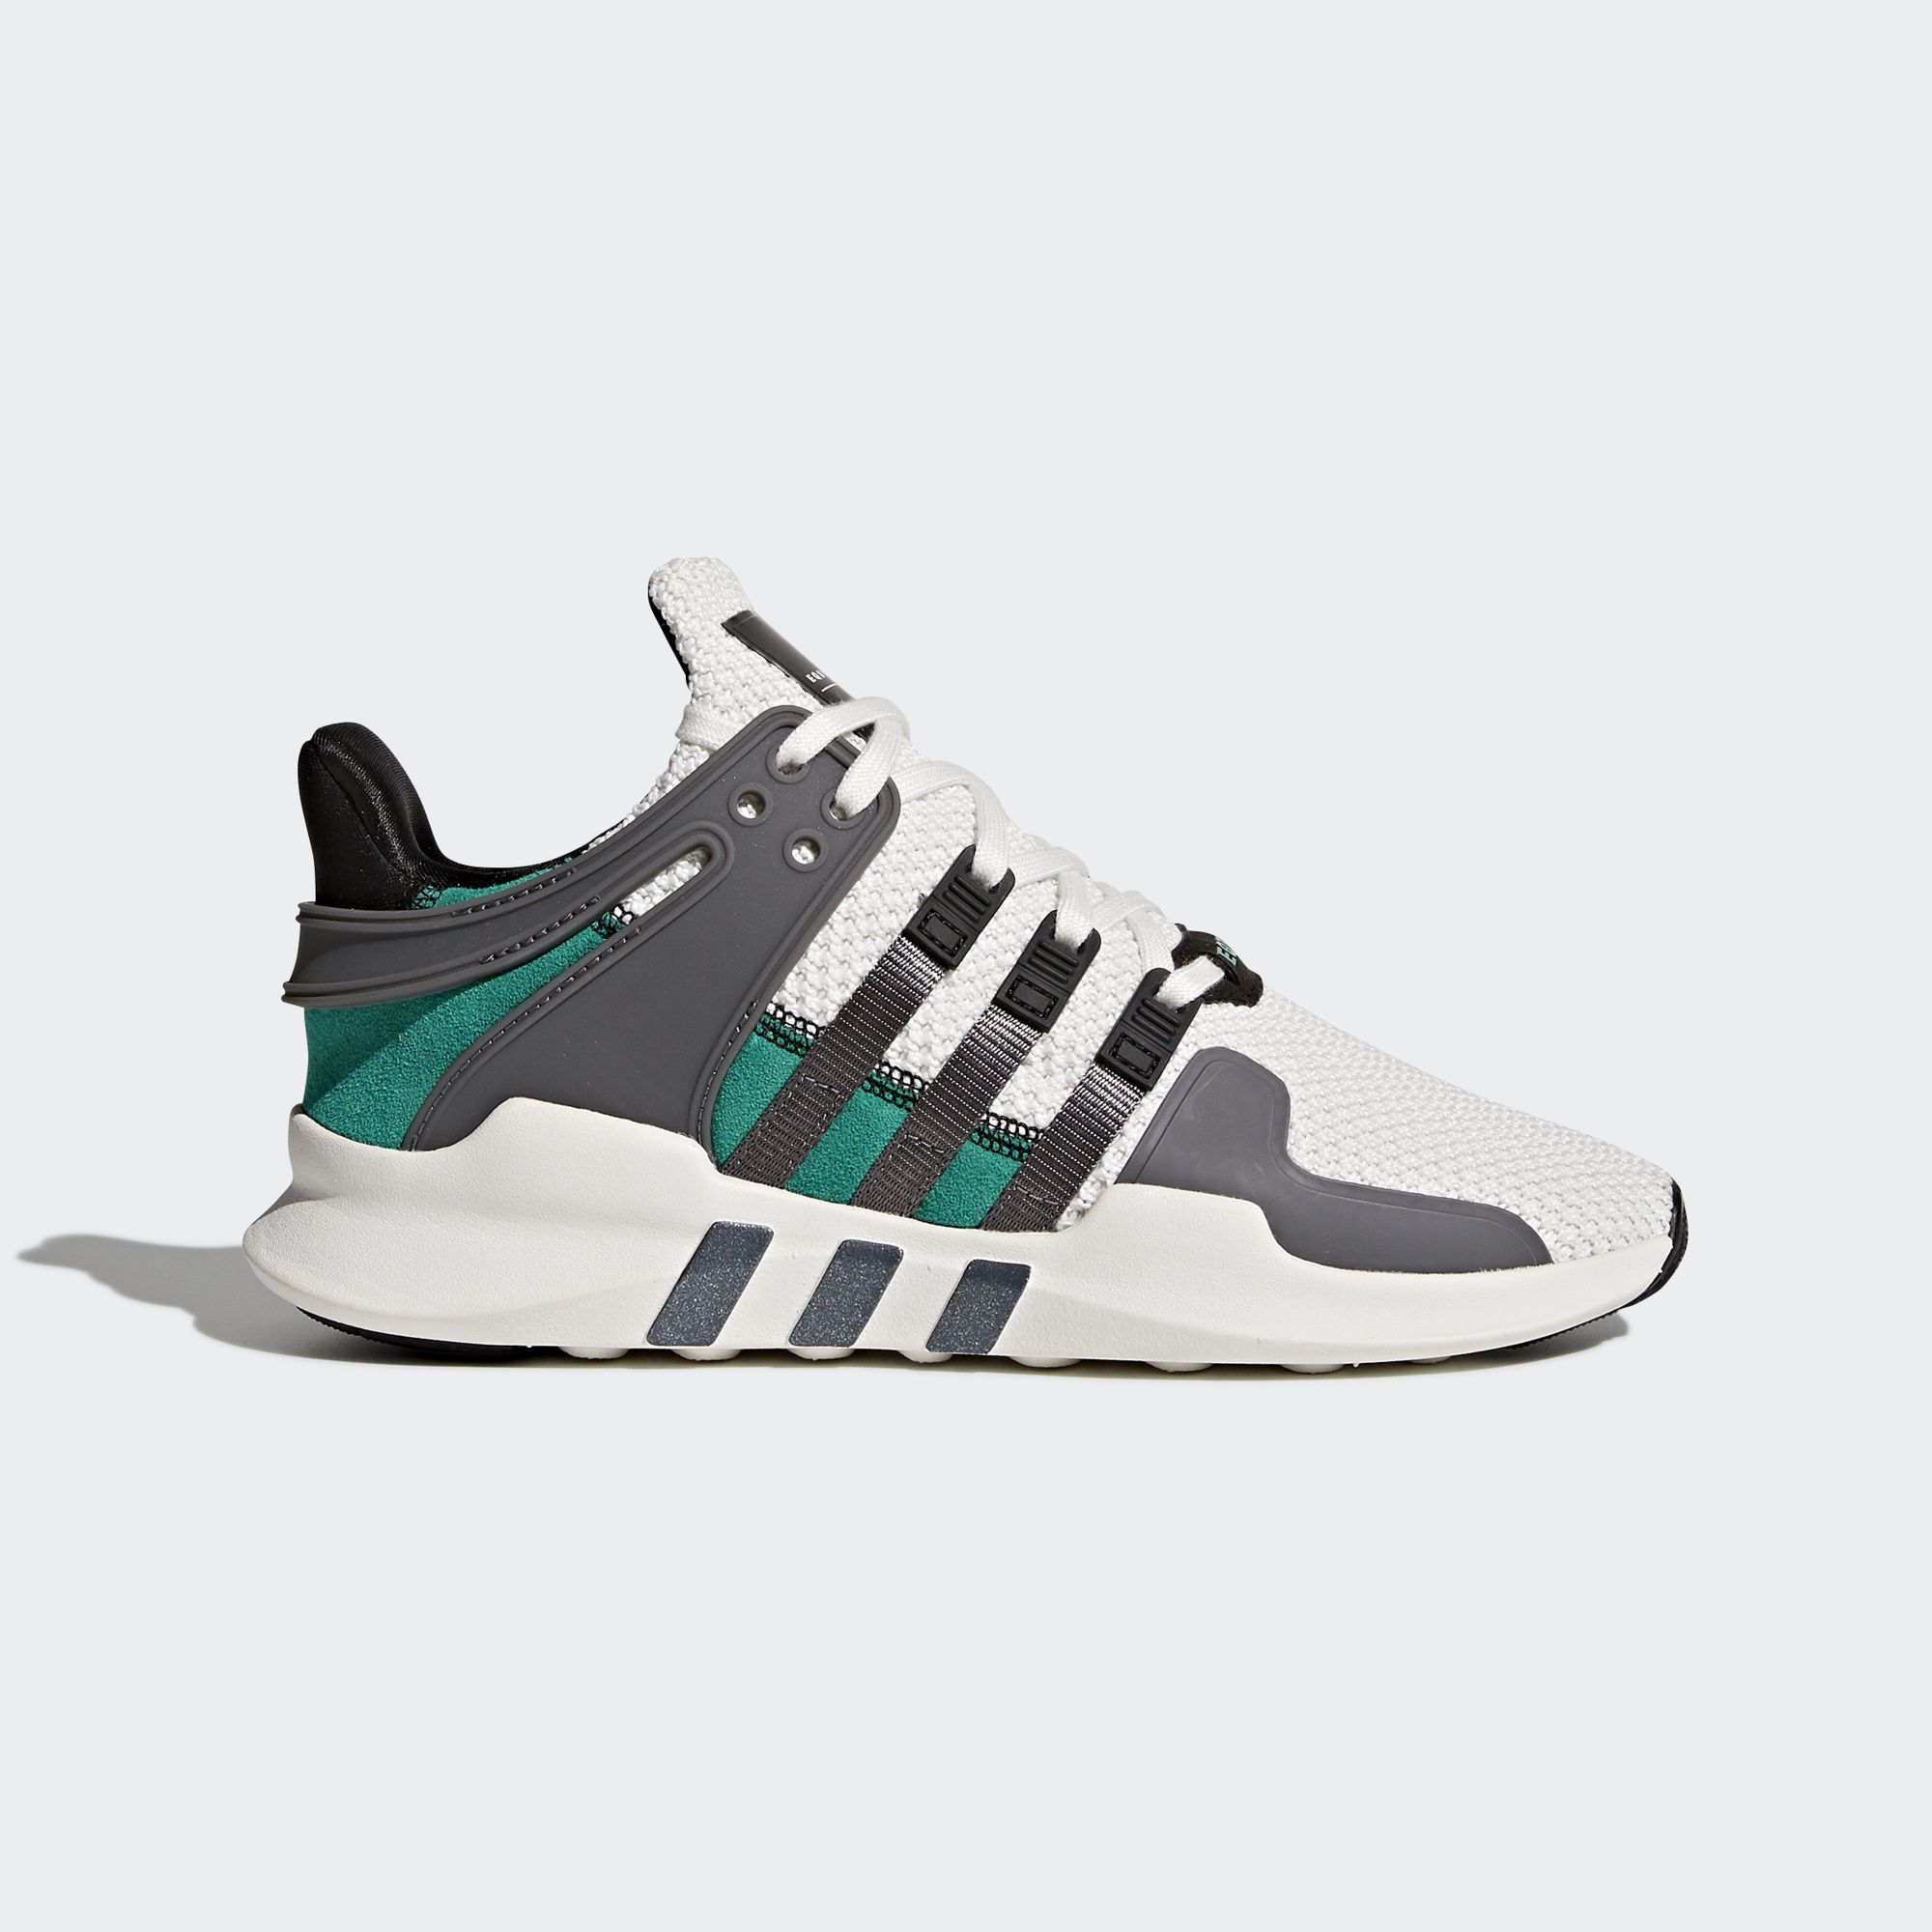 best loved 23436 05e25 Shop for EQT Support ADV Shoes - White at adidas.co.uk! See all the styles  and colours of EQT Support ADV Shoes - White at the official adidas UK  online ...